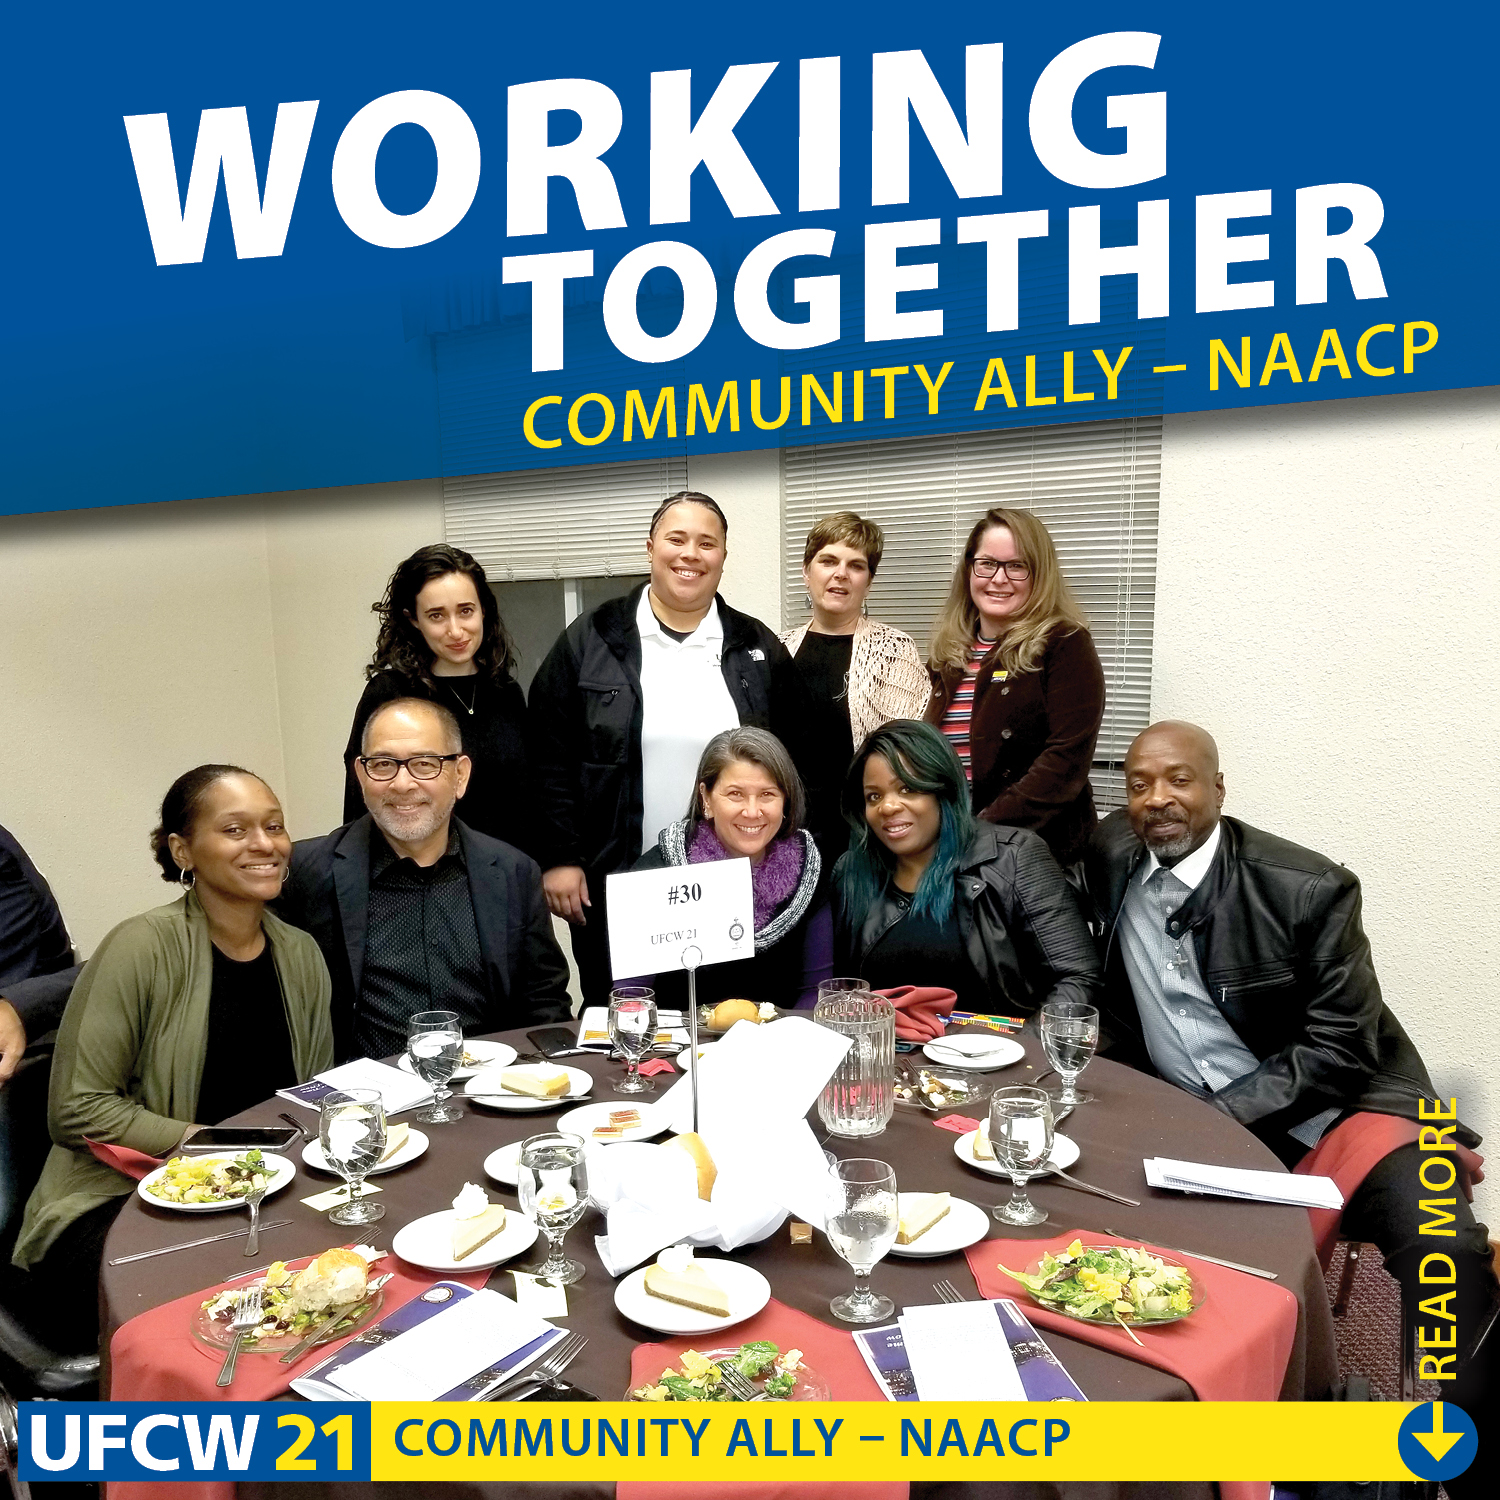 2017 0516 Member Stories COMMUNITY ALLY - NAACP.jpg